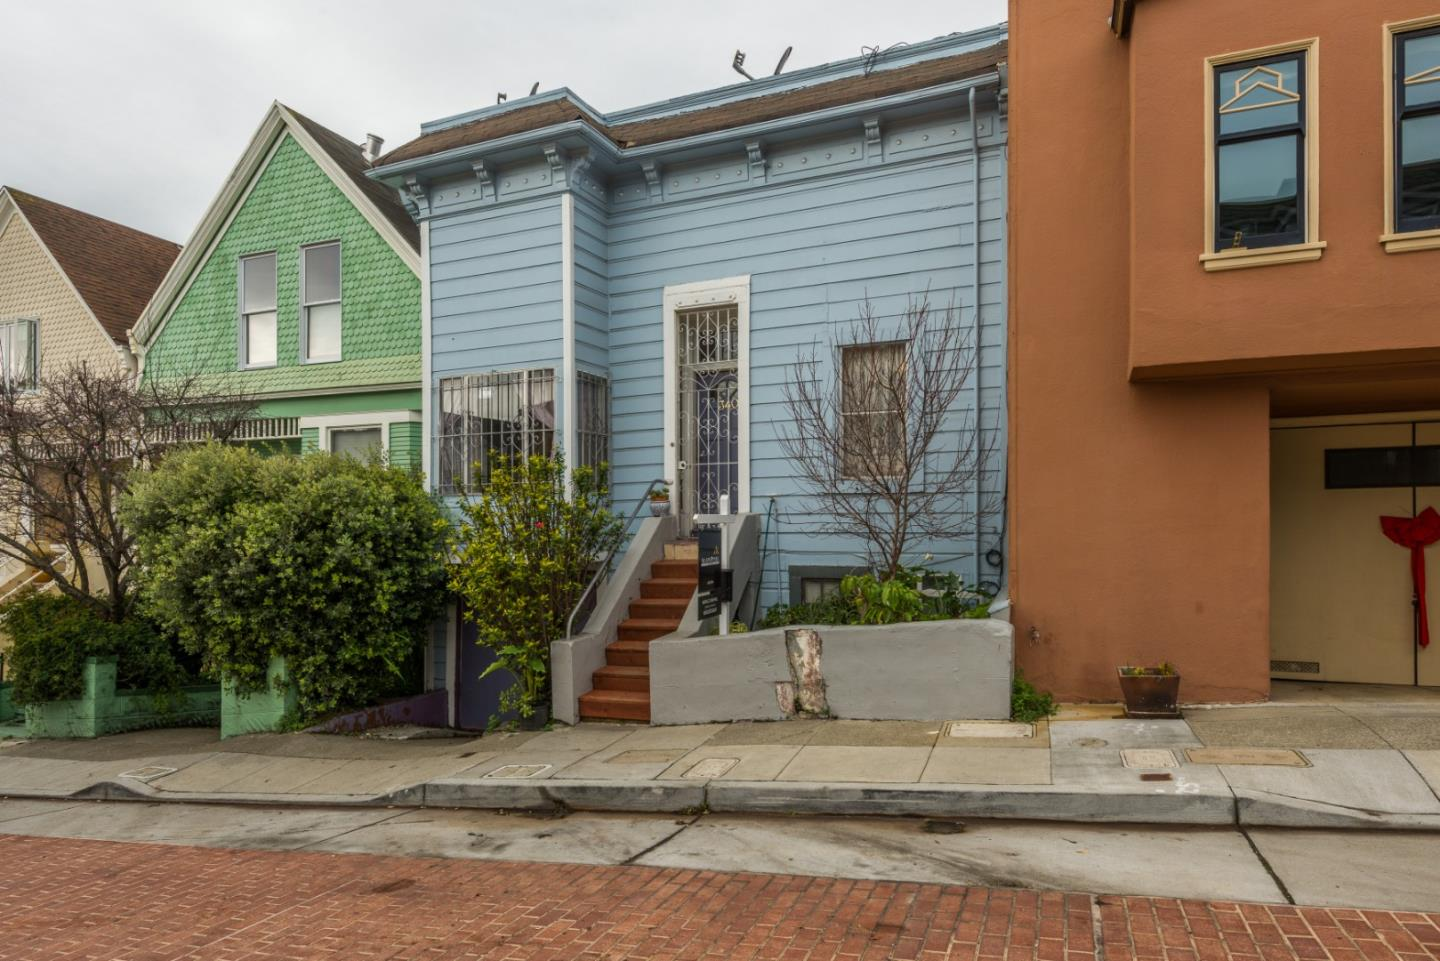 Image for 340 Winfield Street, <br>San Francisco 94110